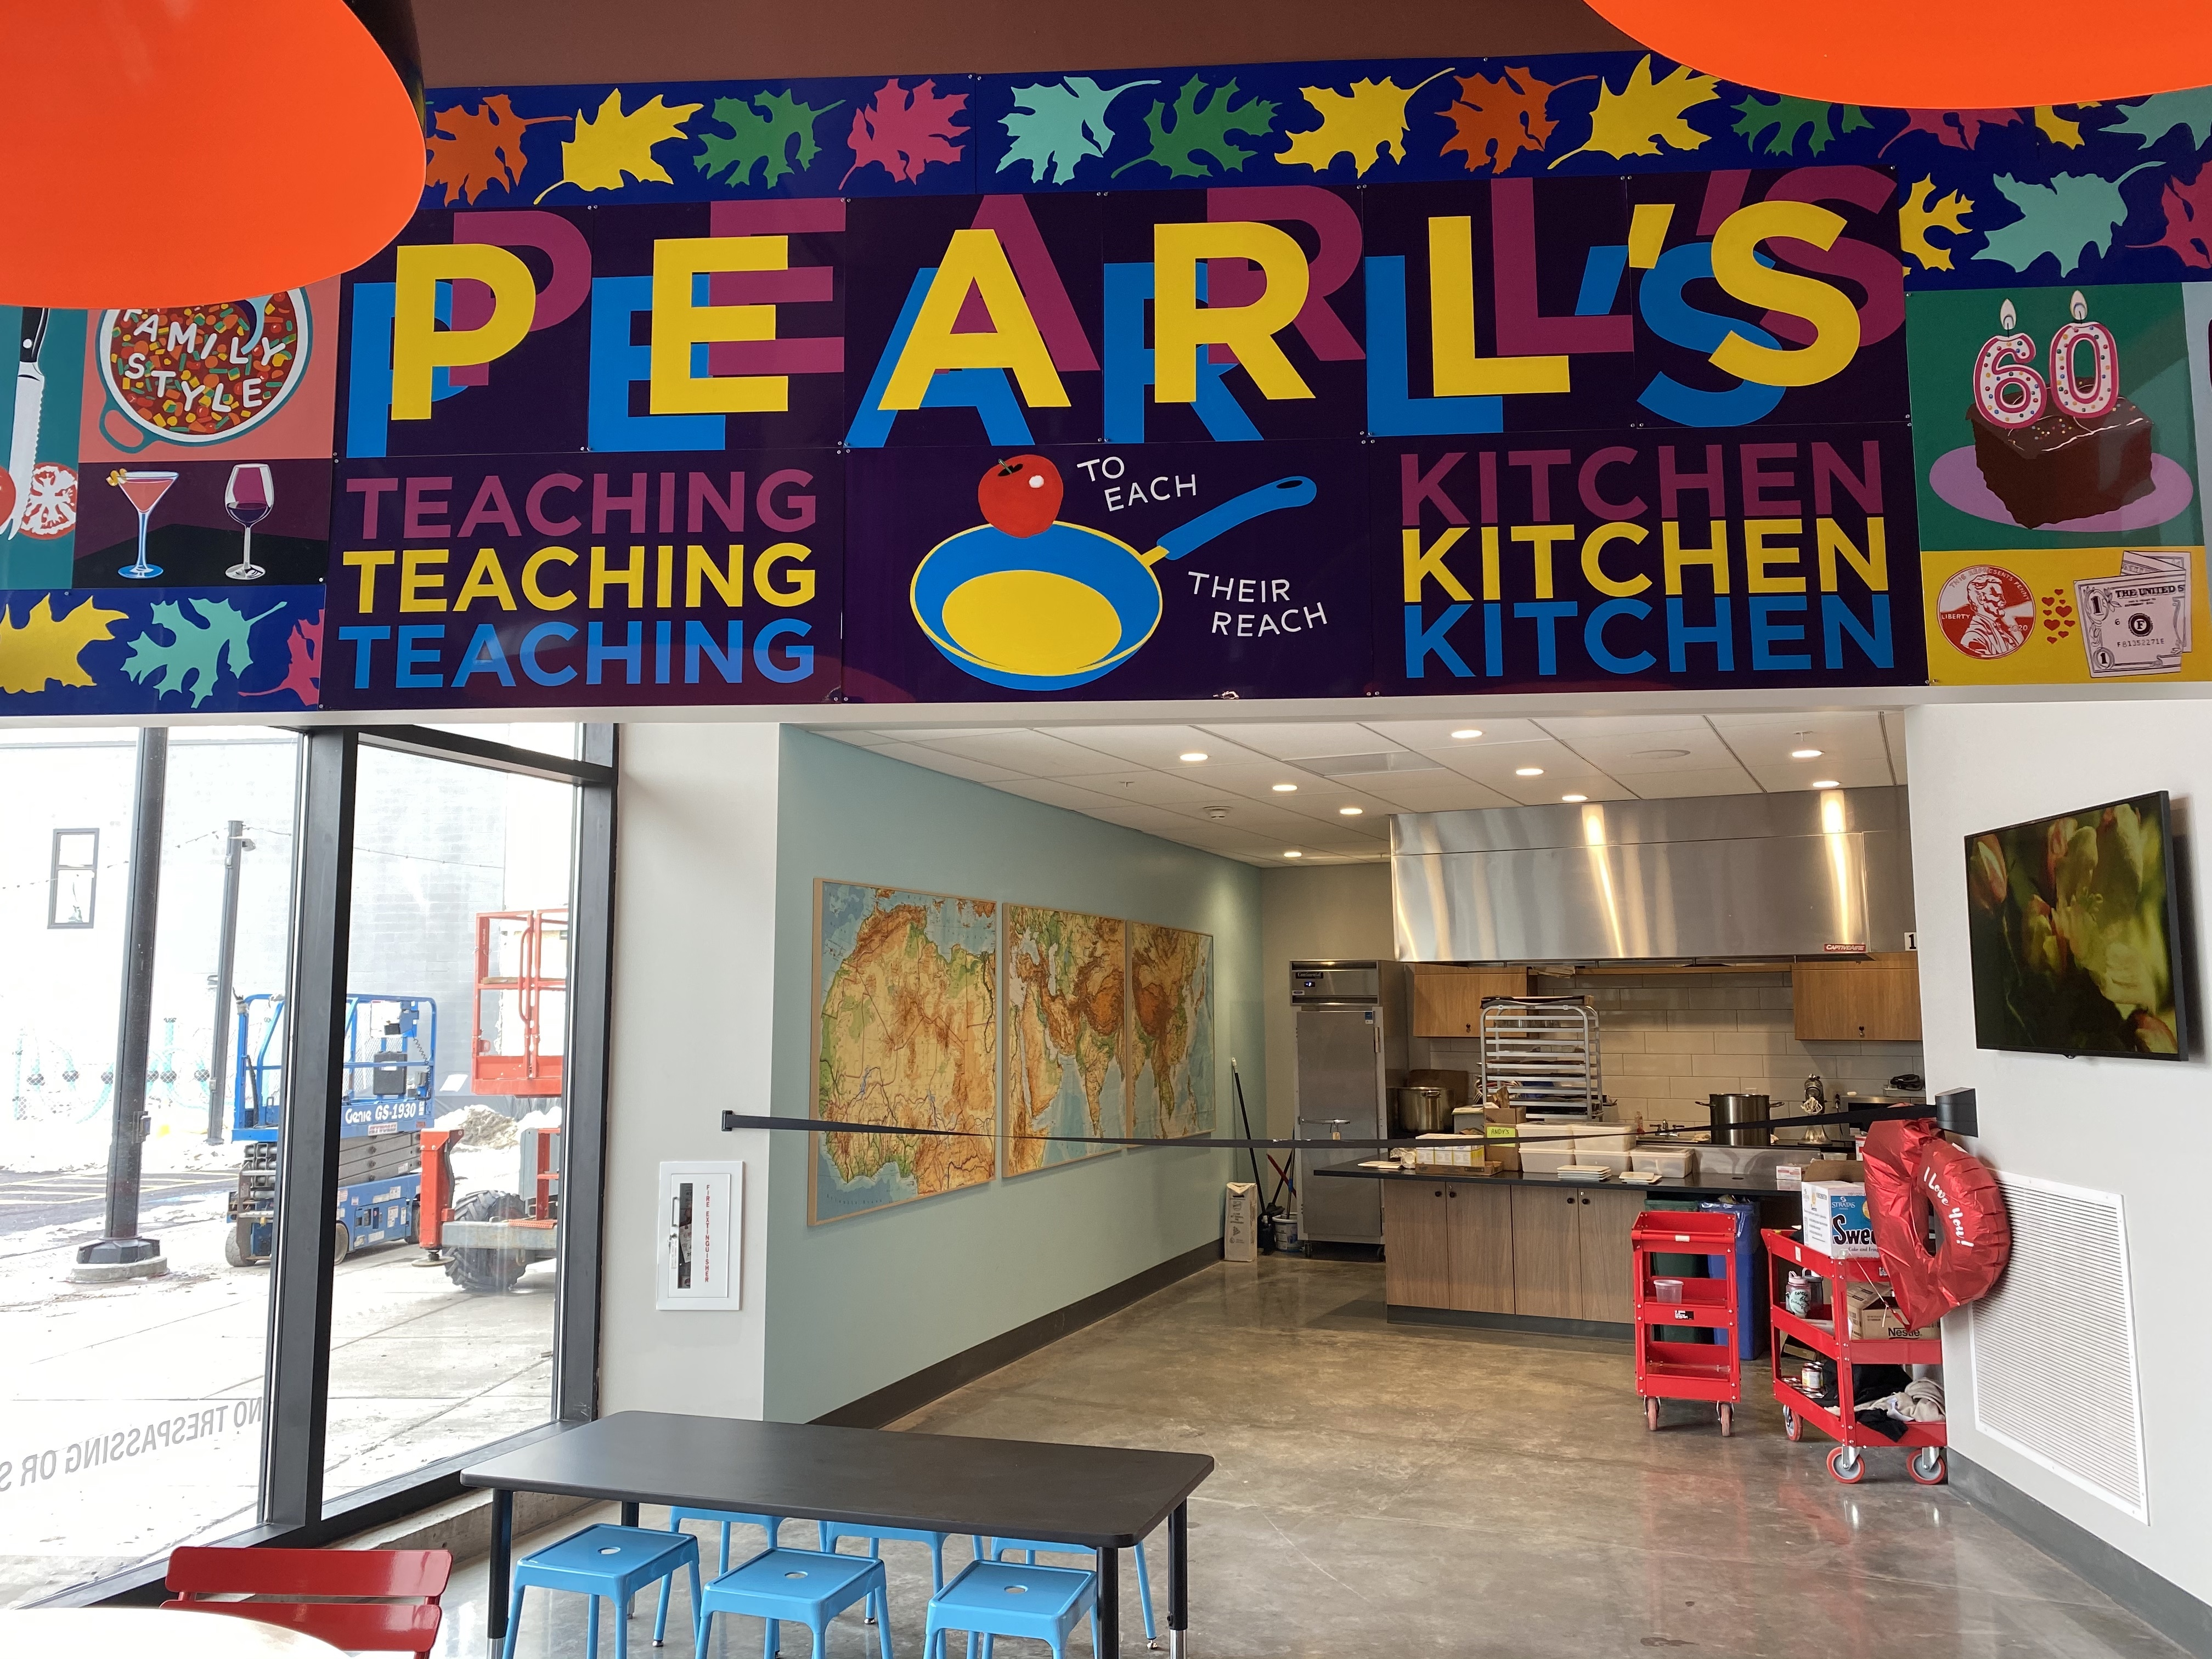 One of the next steps for Salt City Market is to open up Pearl's Teaching Kitchen for customers to immerse themselves in cooking food of different cultures.